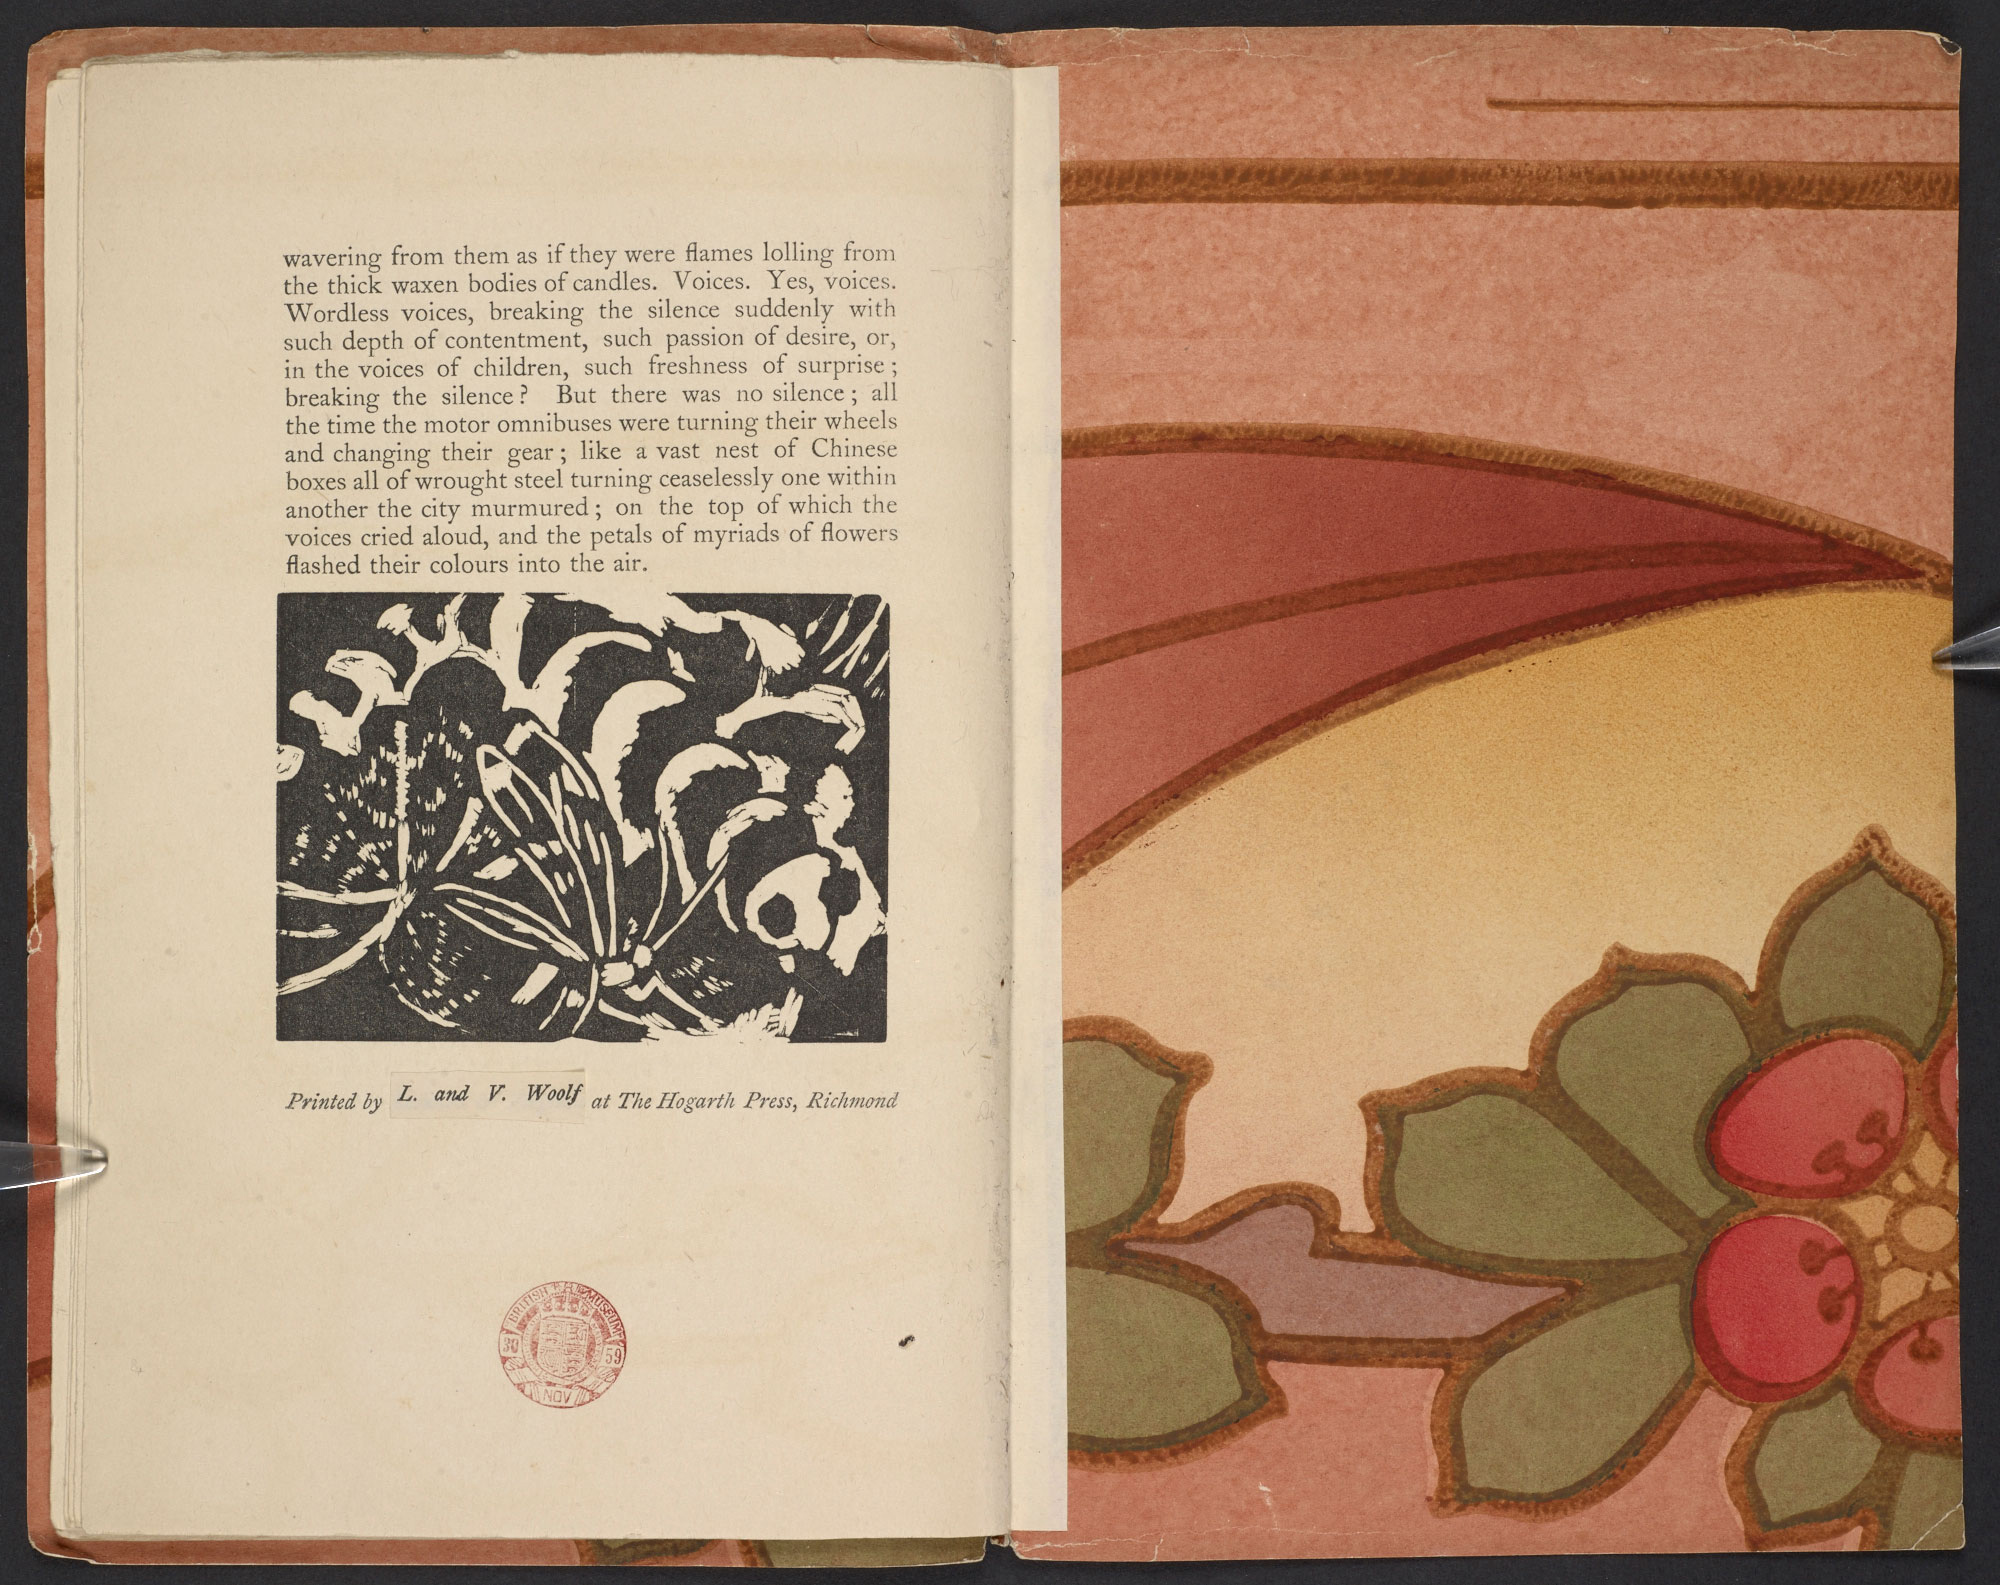 Kew Gardens by Virginia Woolf, 1919